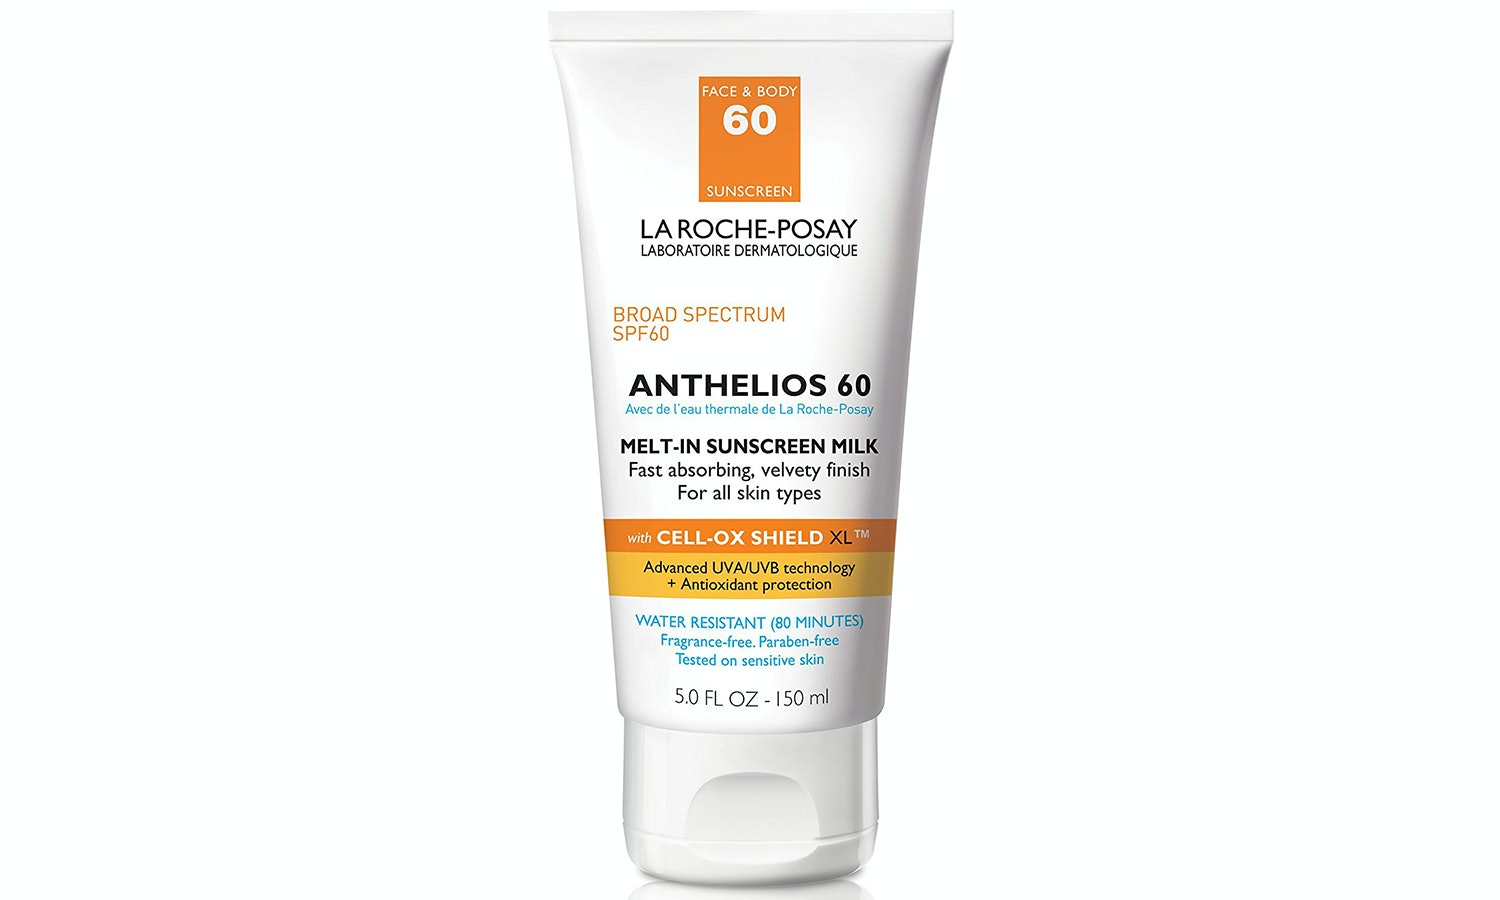 face sunscreen for dry skin